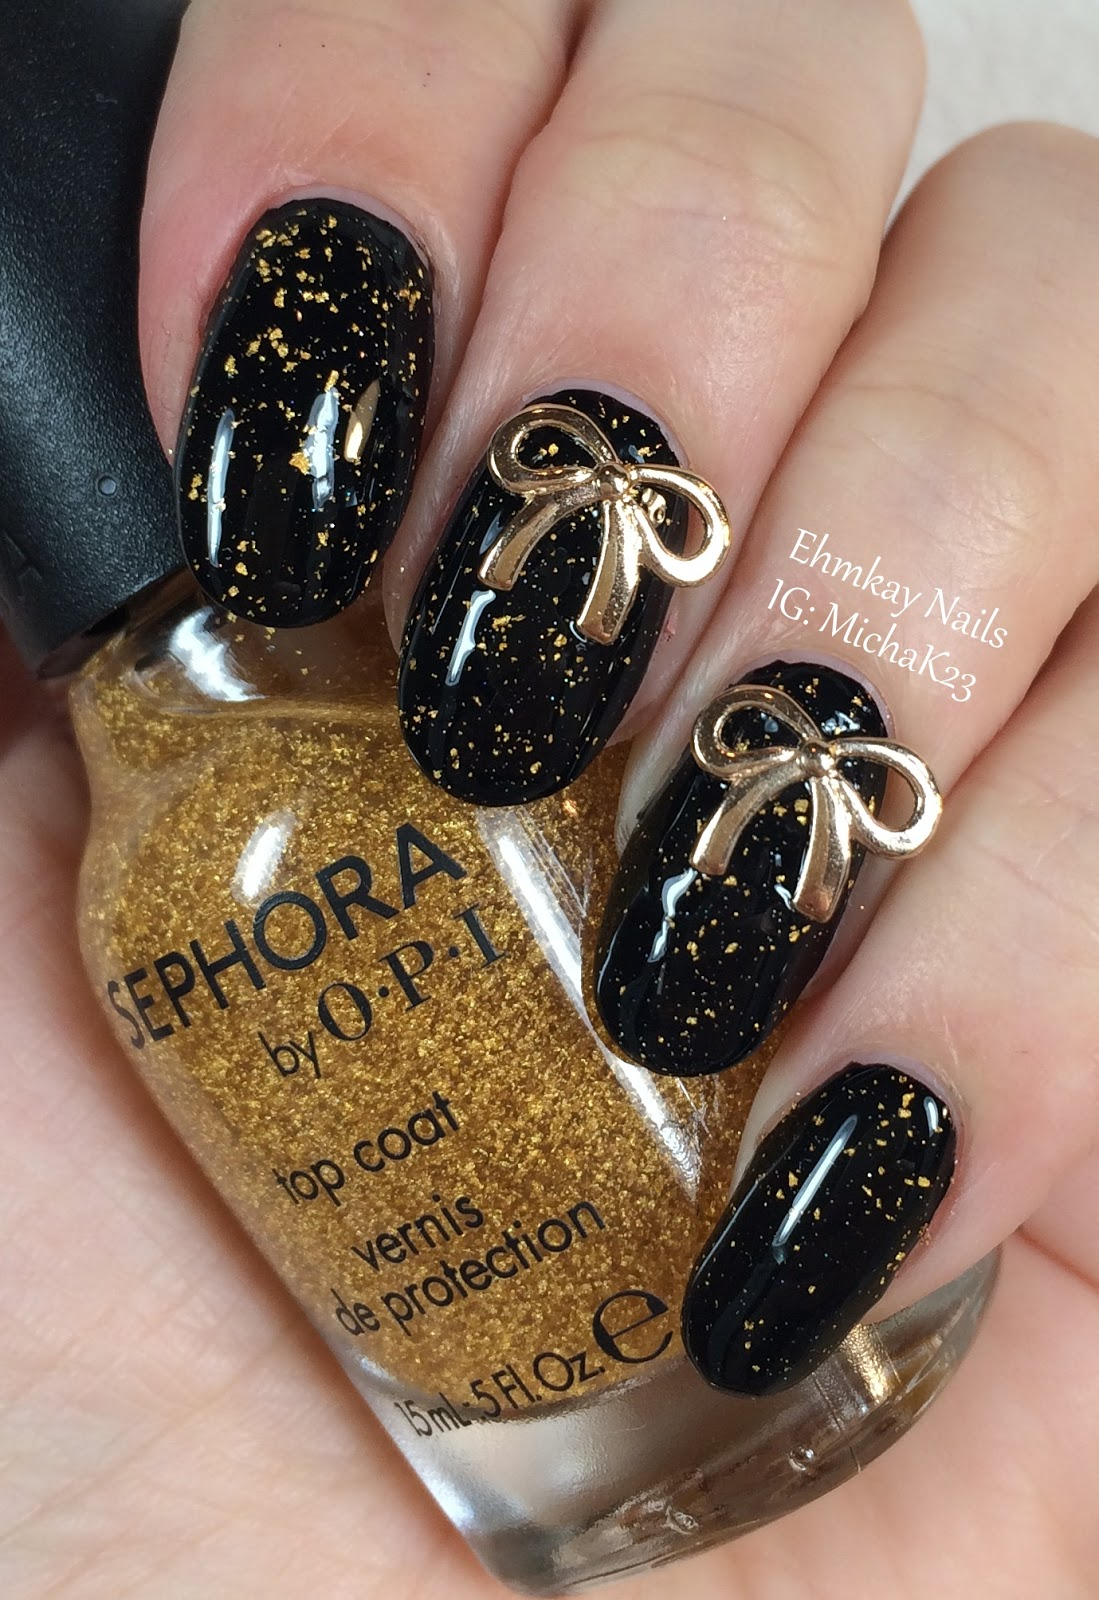 Ehmkay Nails: New Year's Eve Nails: Gold Bows To Wrap Up